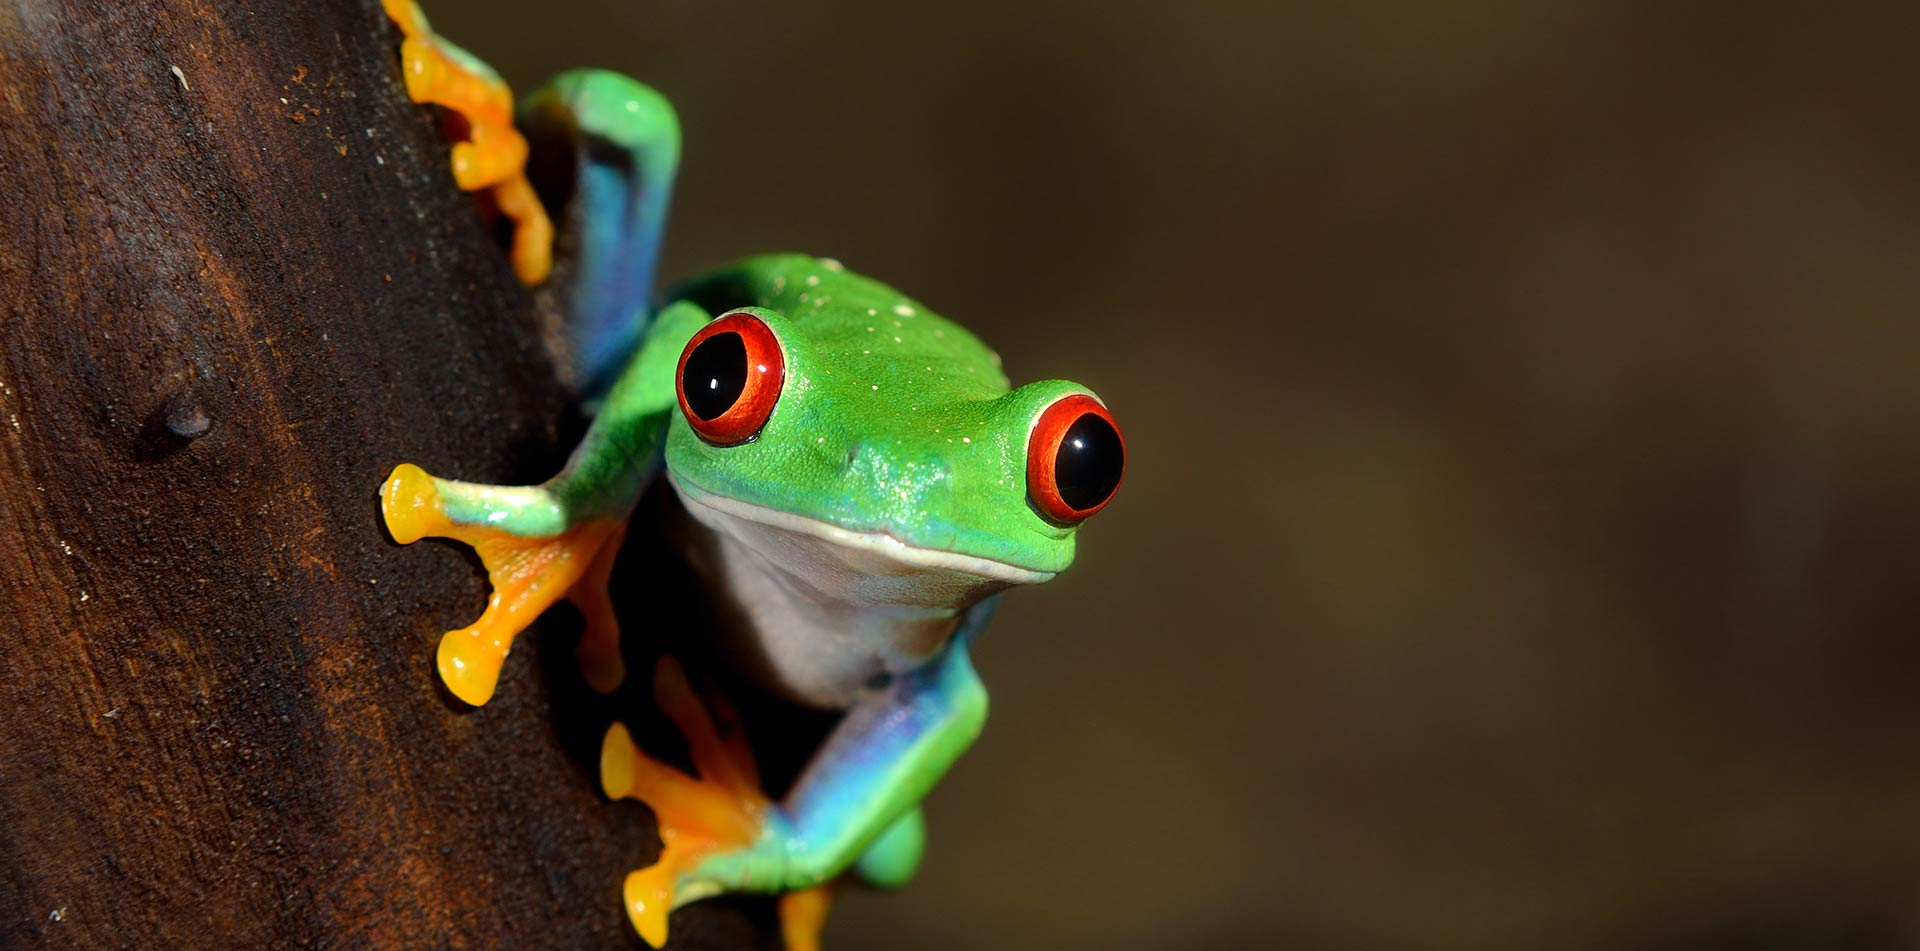 Red eyed frog, Costa Rica